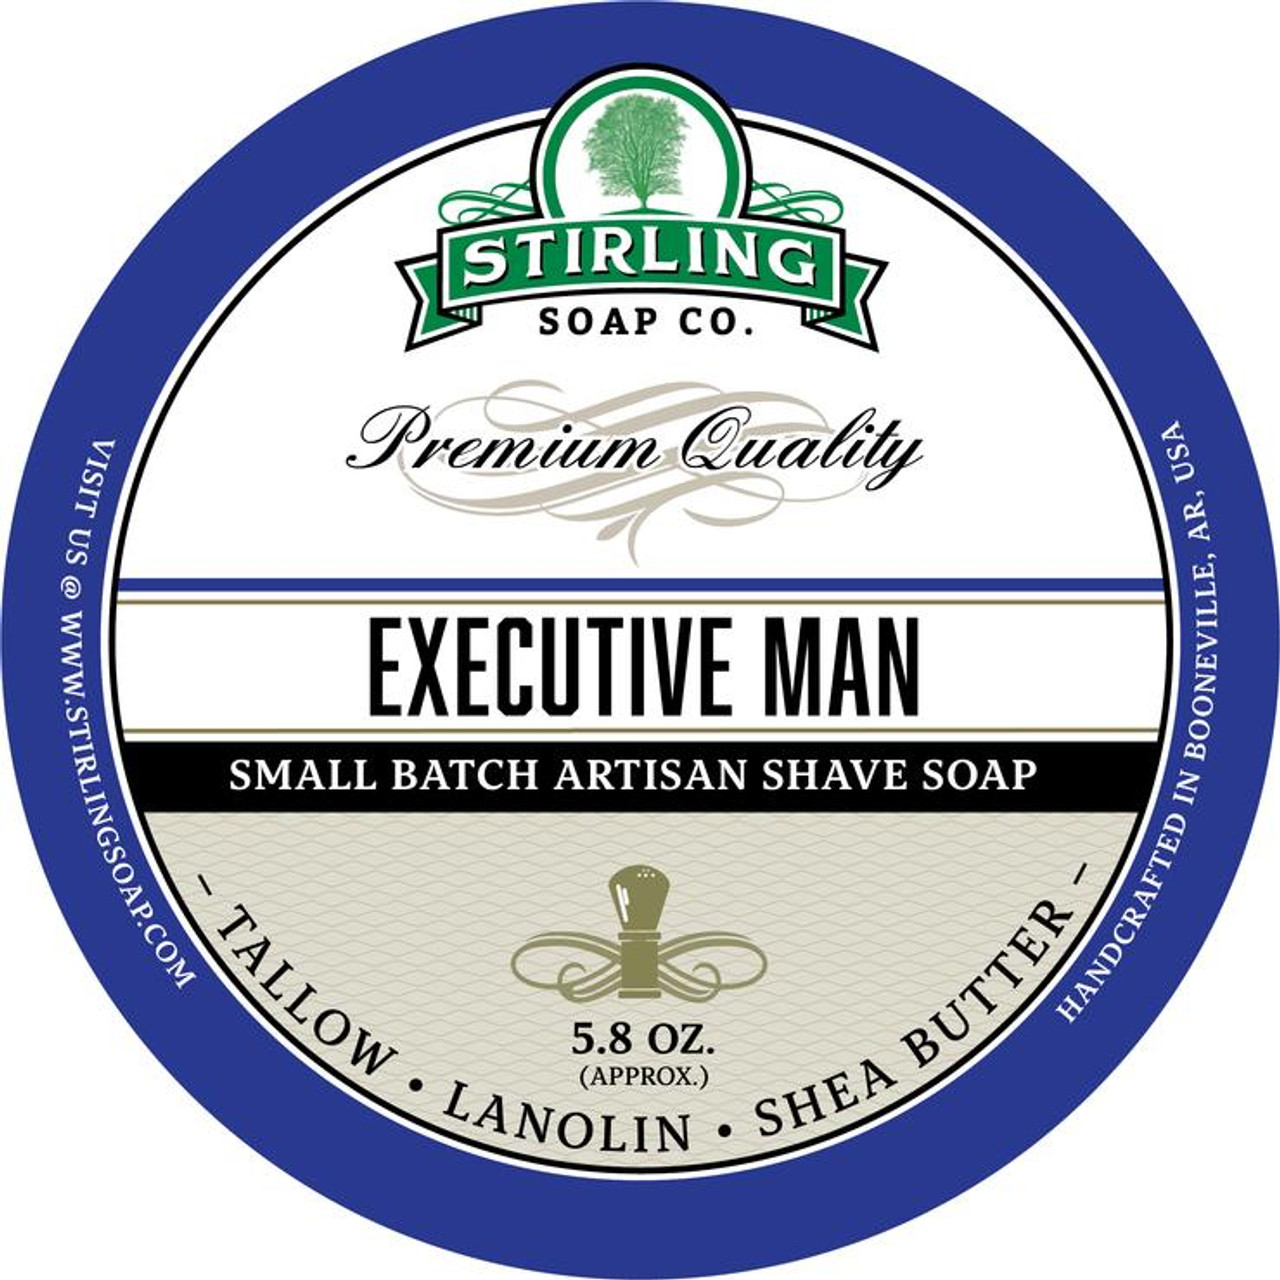 Stirling Executive Man Shave Soap 5.8oz